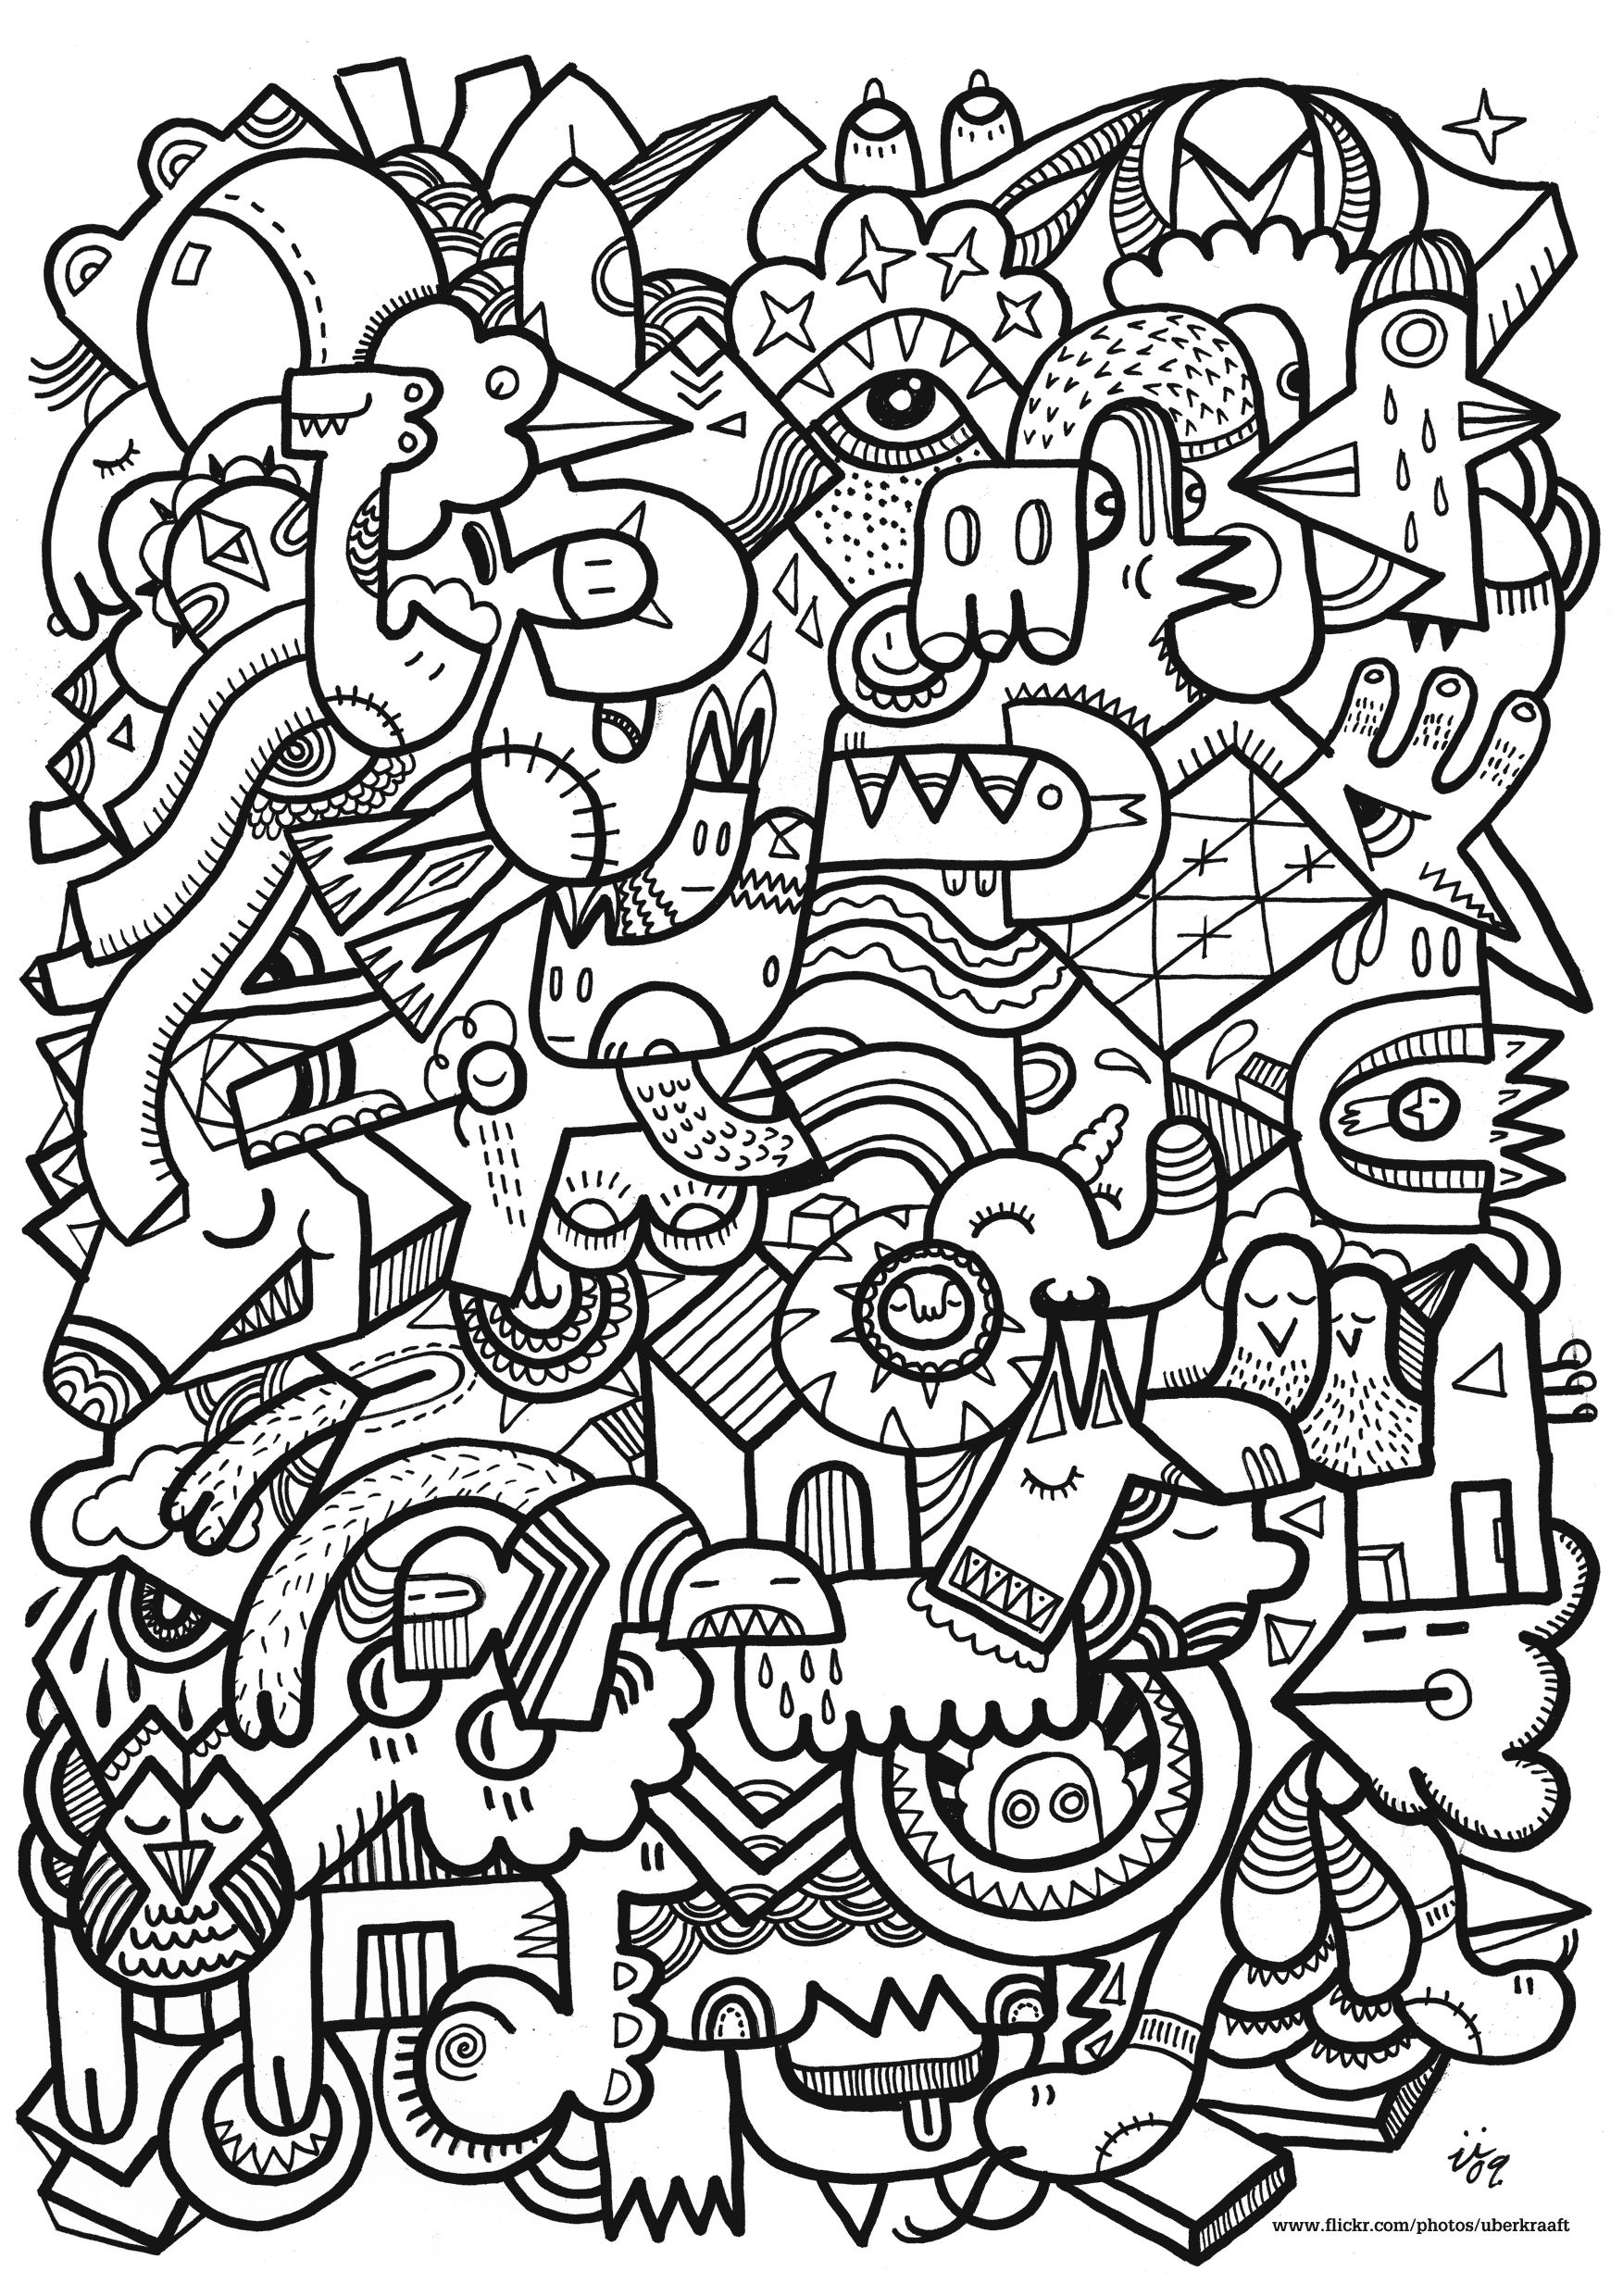 Anti stress colouring pages for adults -  Coloring Adult Difficult Art Difficult Art From The Gallery Zen Anti Stress